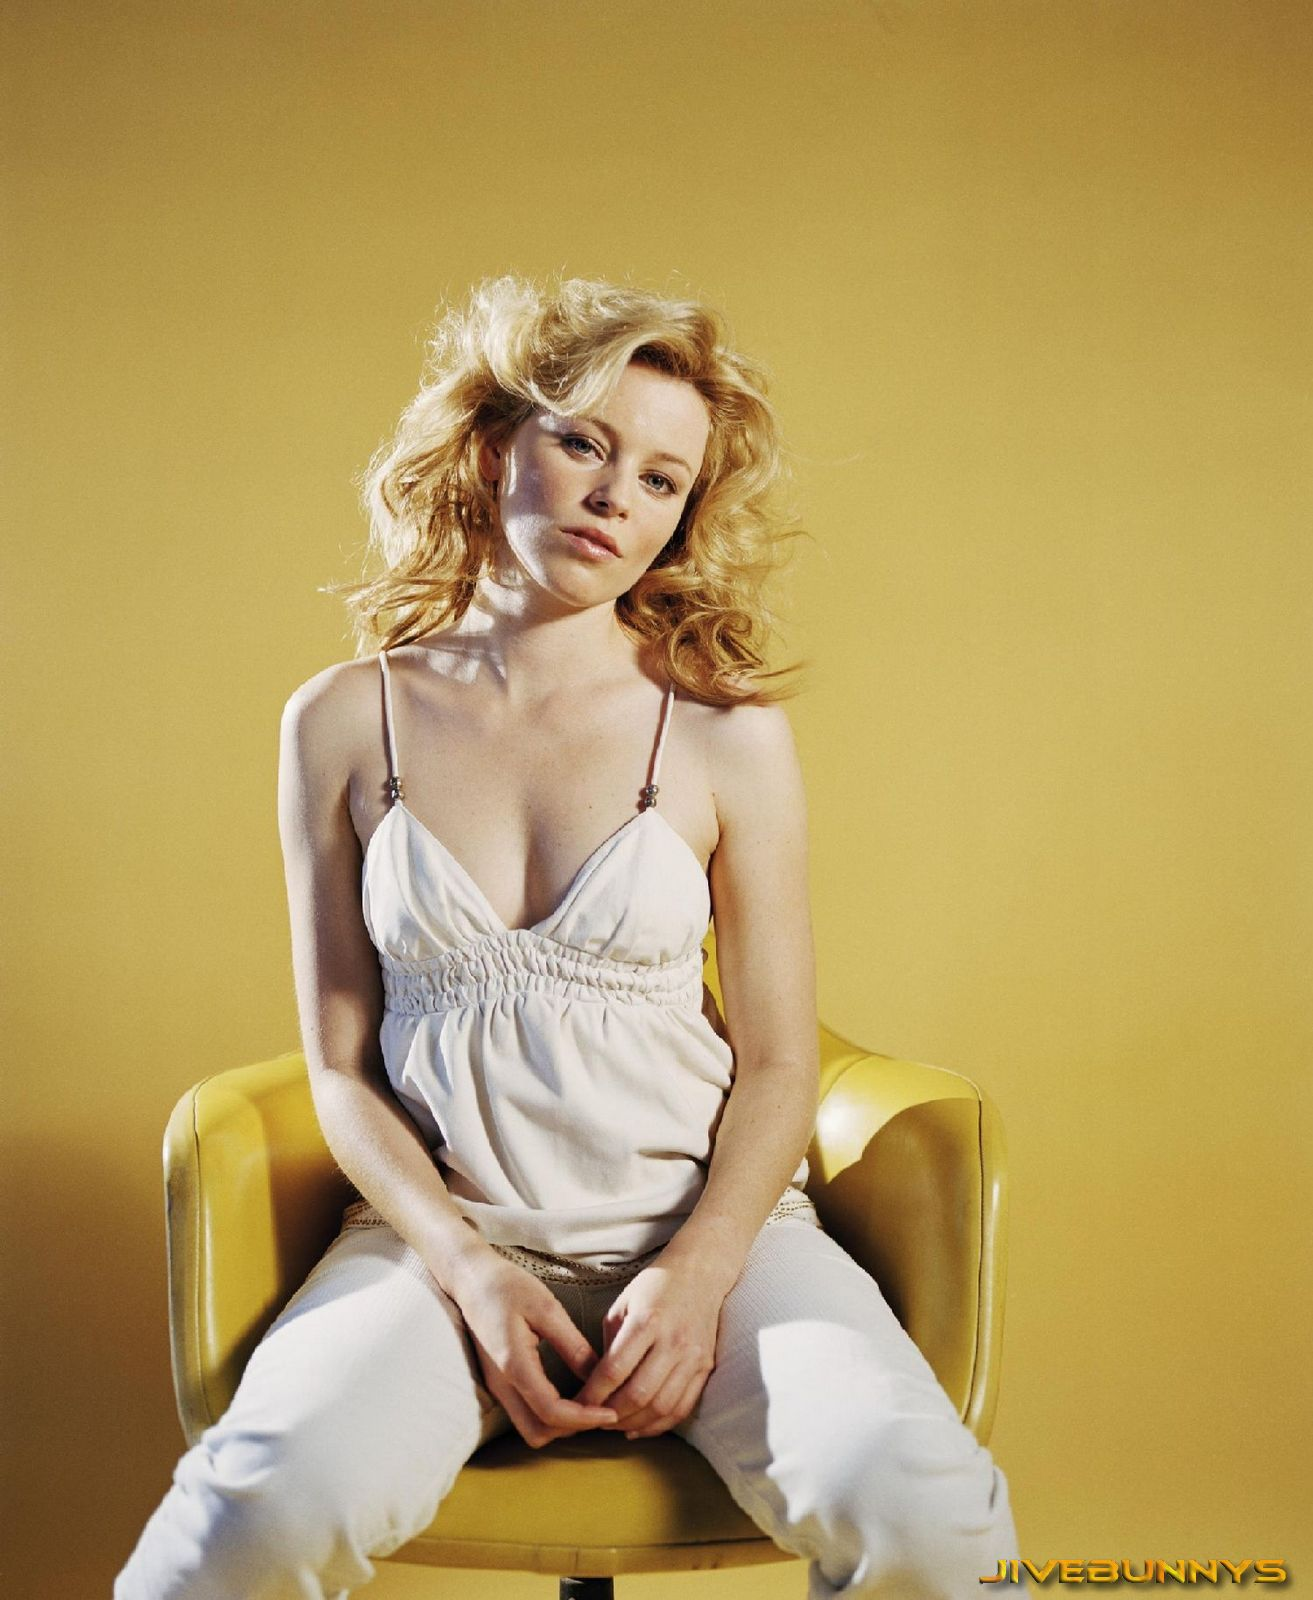 elizabeth banks movies - photo #10